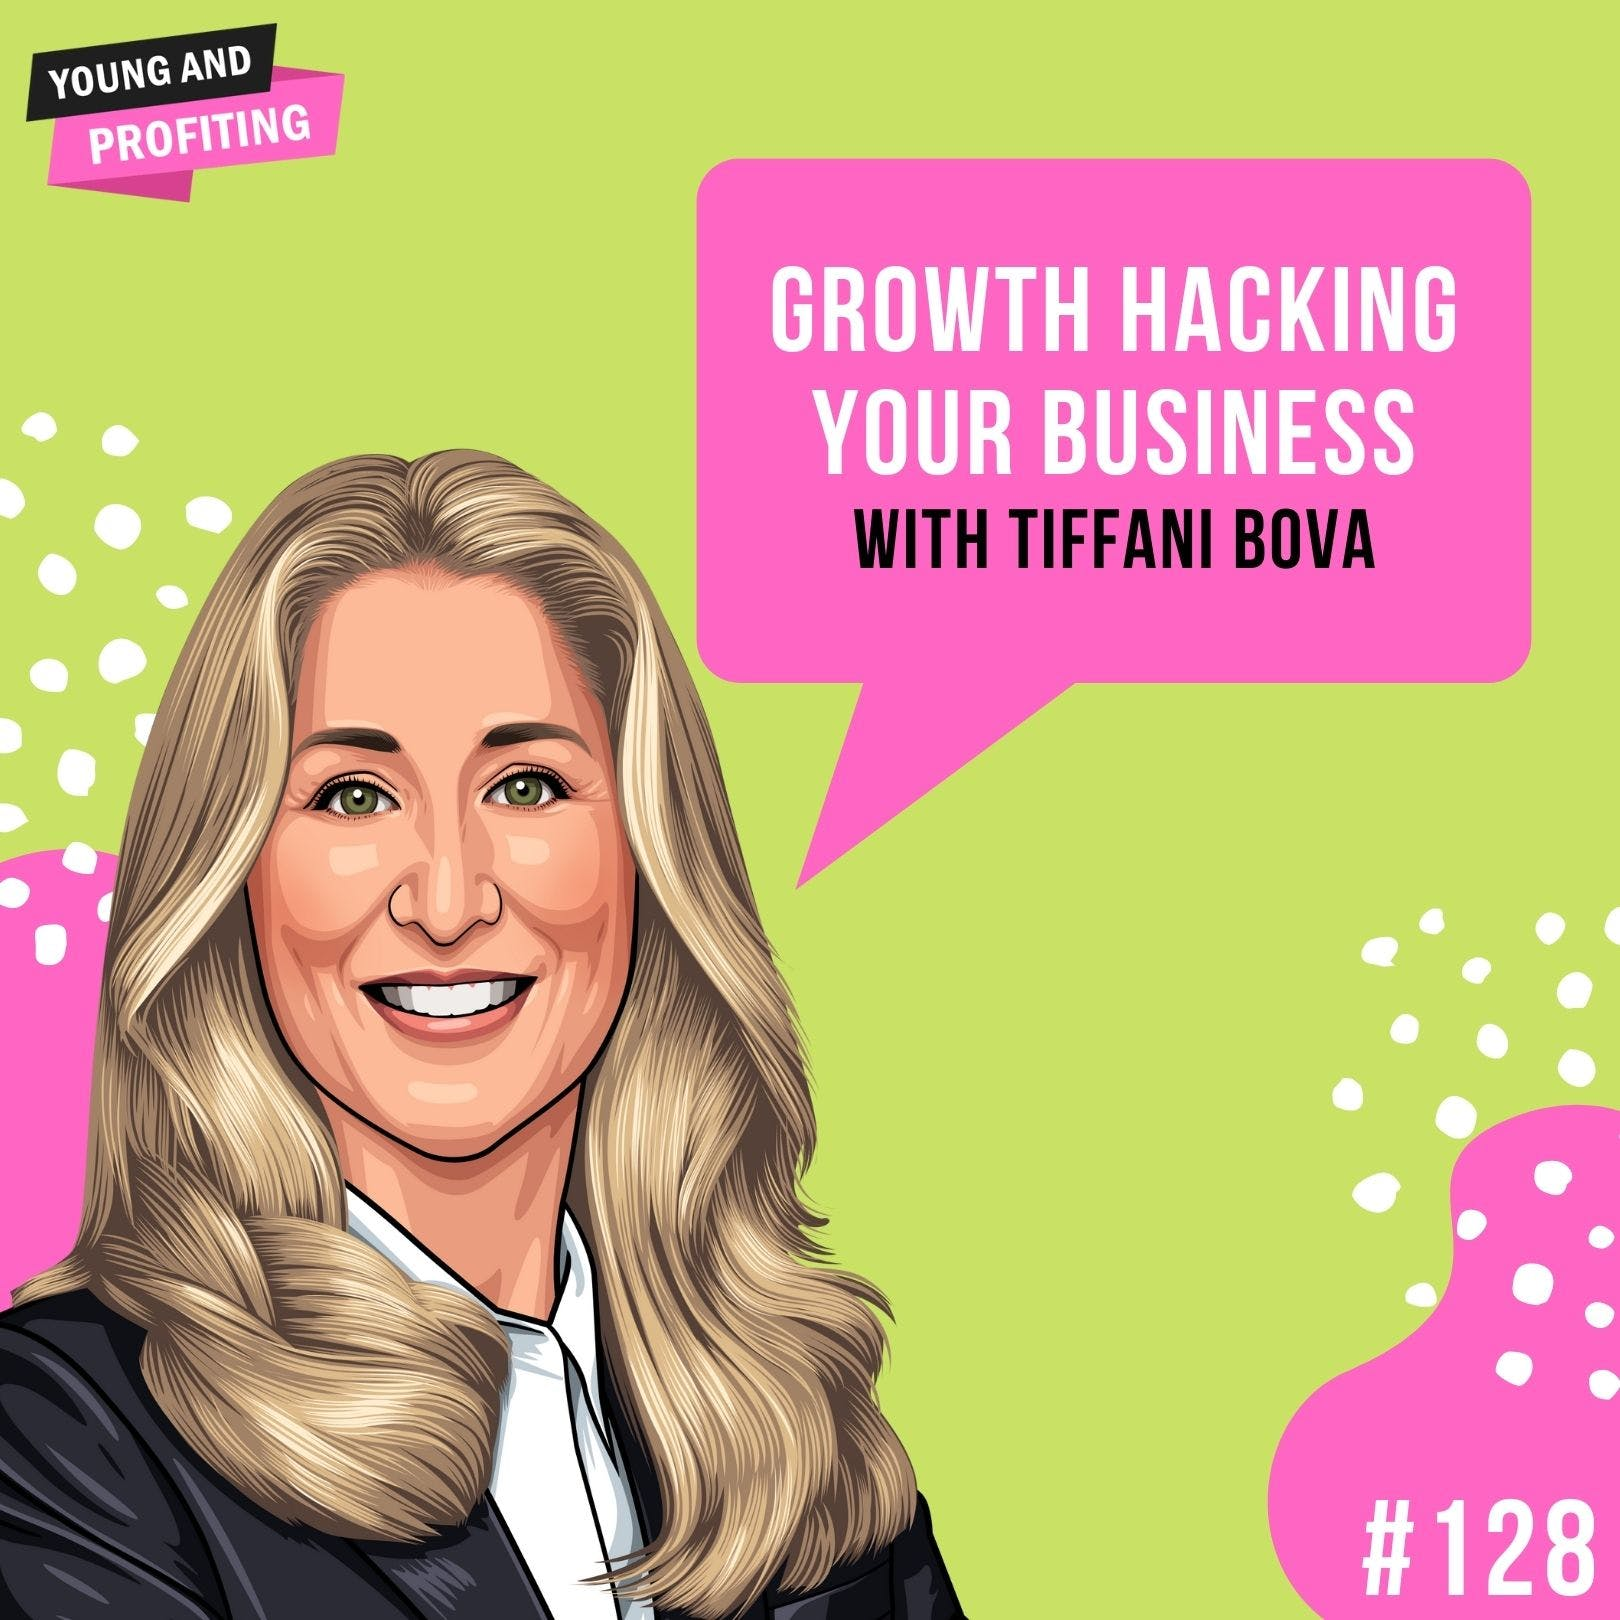 #128: Growth Hacking Your Business with Tiffani Bova